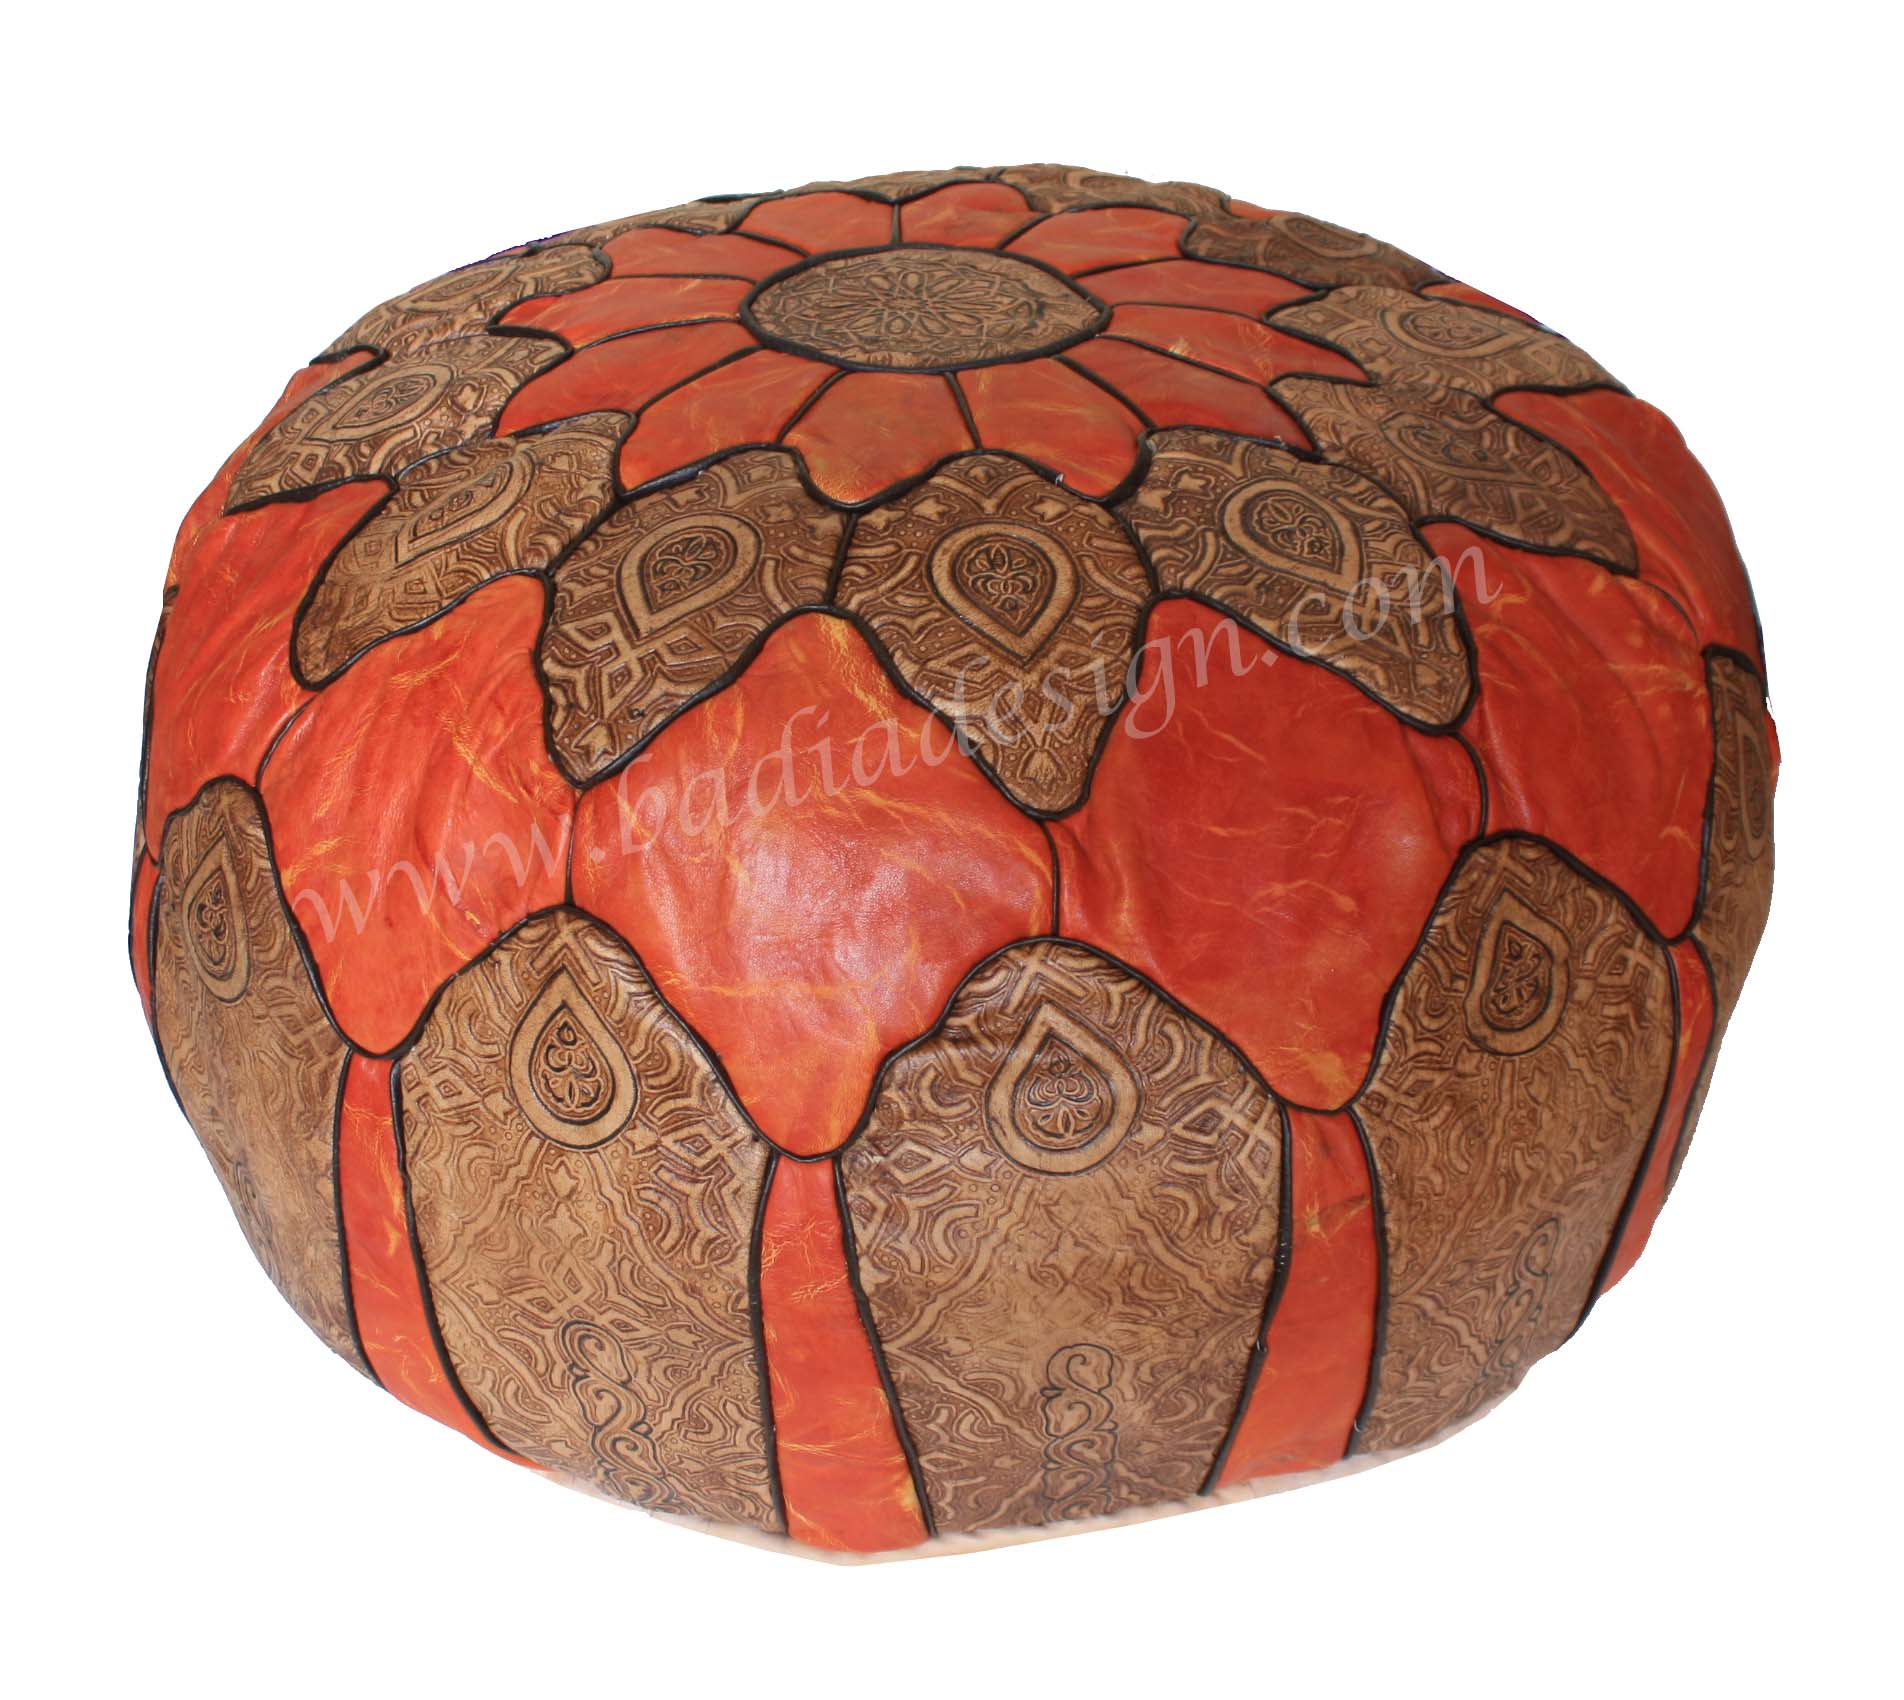 moroccan-round-leather-pouf-1.jpg